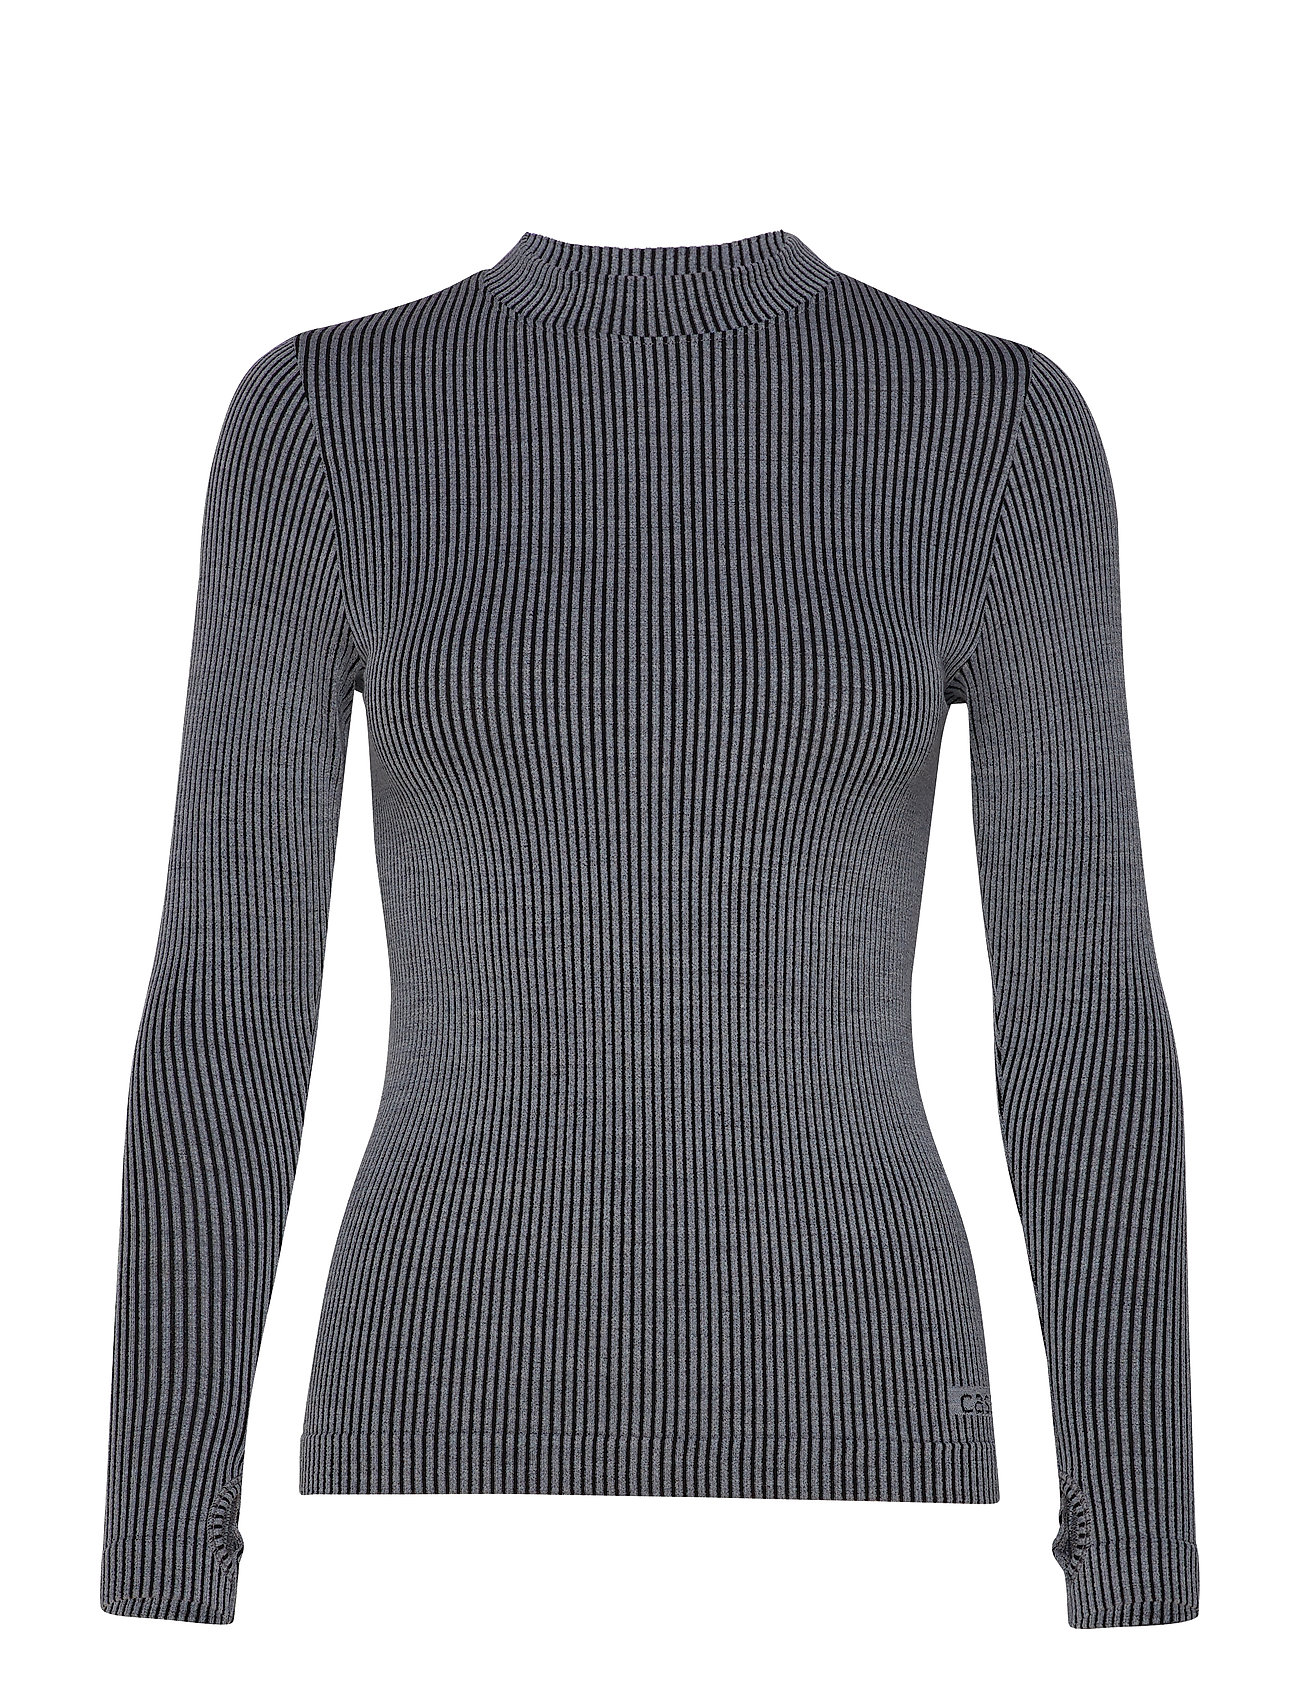 Casall Wool Rib Long Sleeve - BLACK GREY RIB